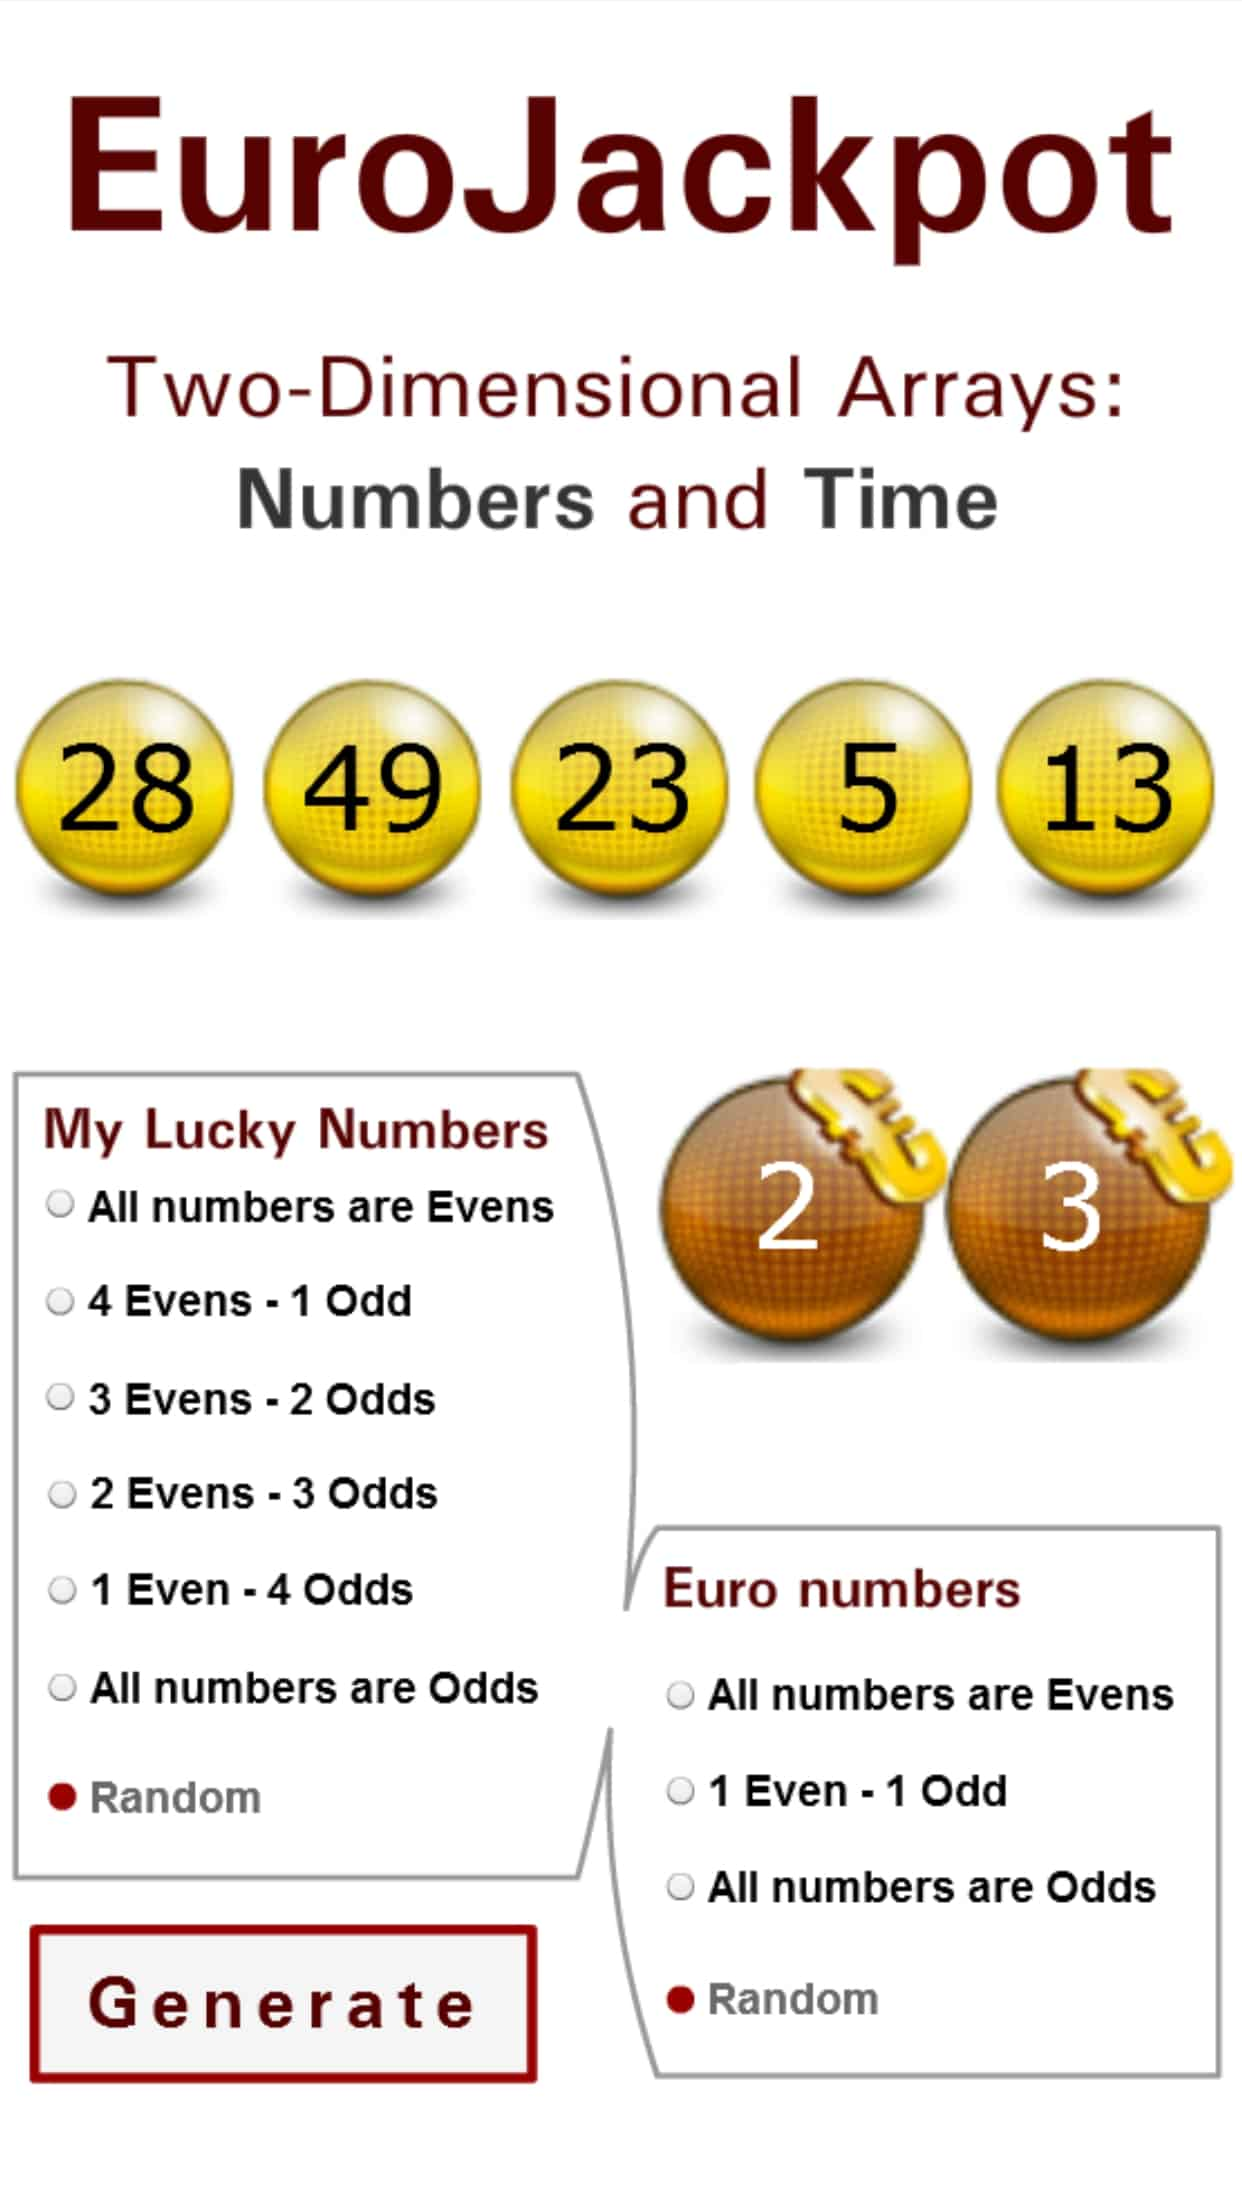 EuroJackpot - Results, Tips & Winning Numbers